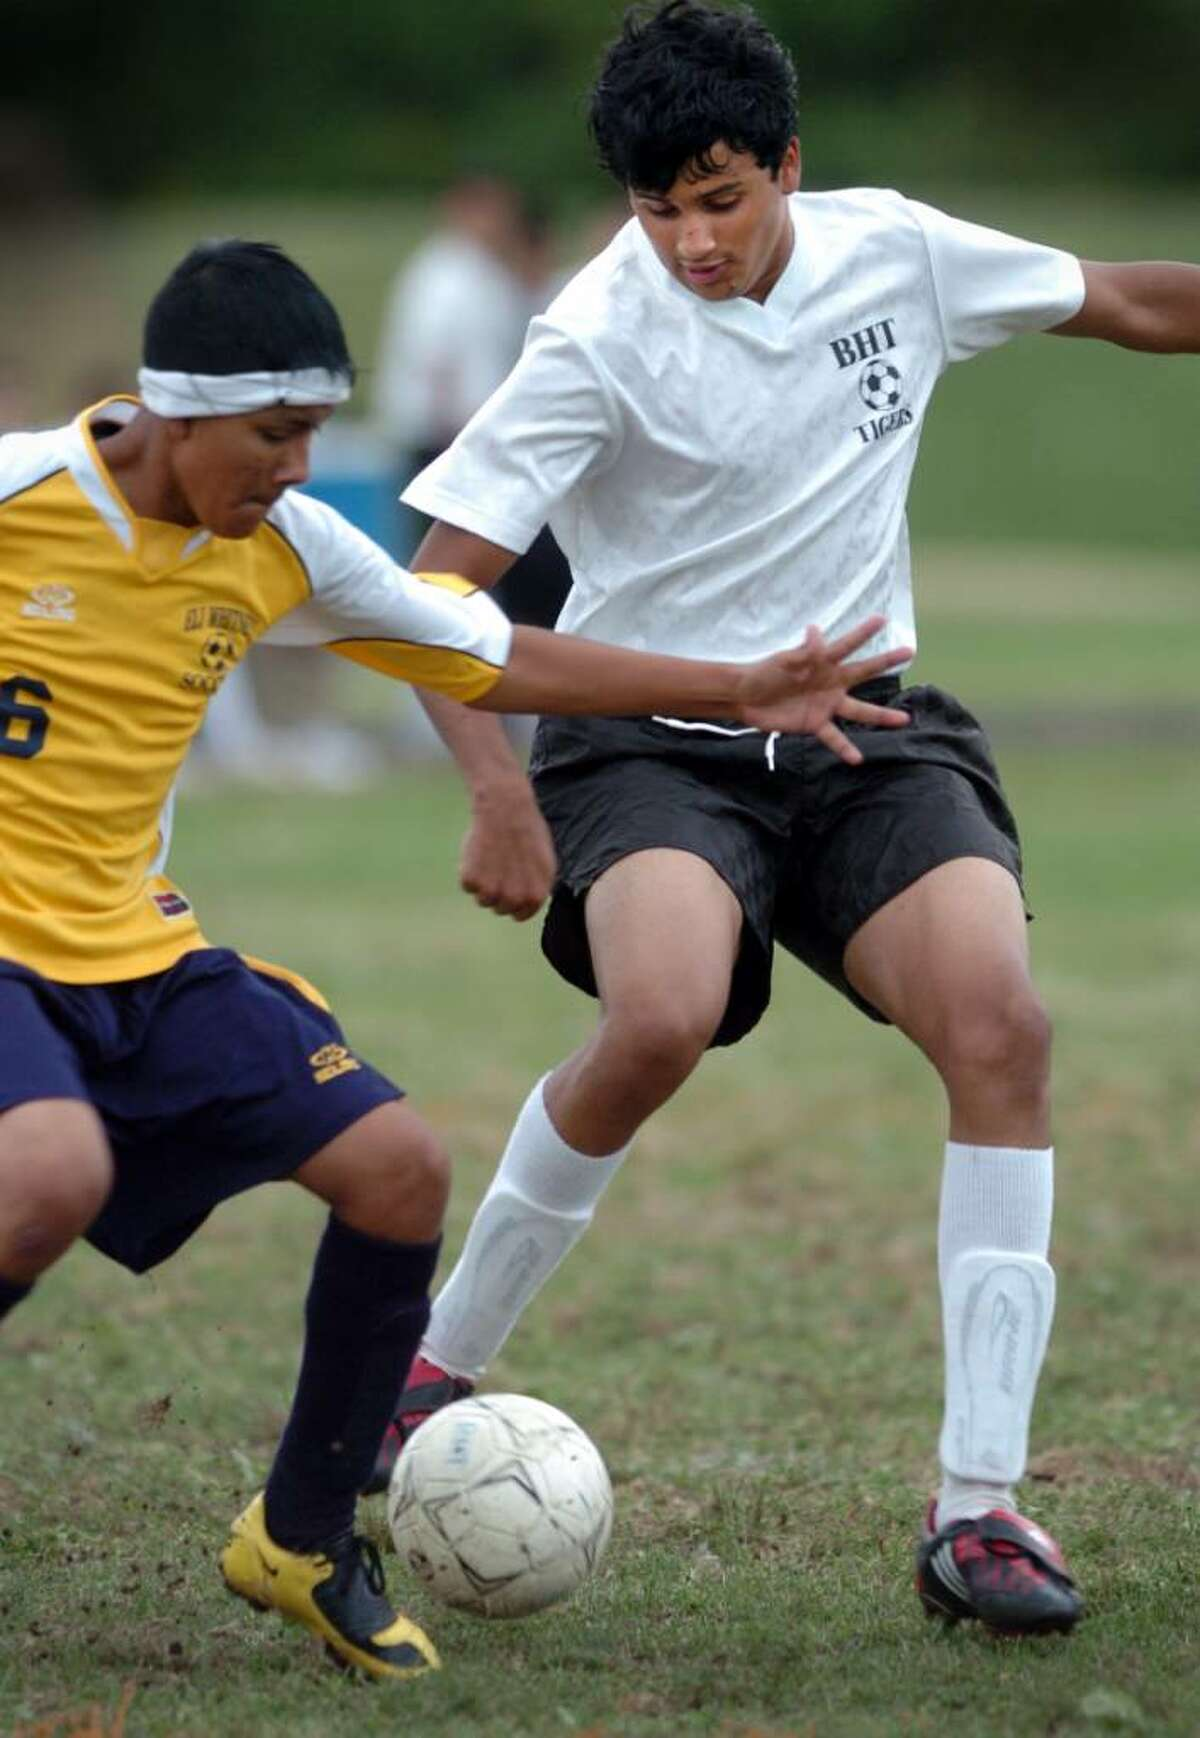 Bullard-Haven's Jheison Mendes moves the ball down the field as Eli Whitney's Andy Fuentes tries to take control during the second half of Tuesday's game in Bridgeport.